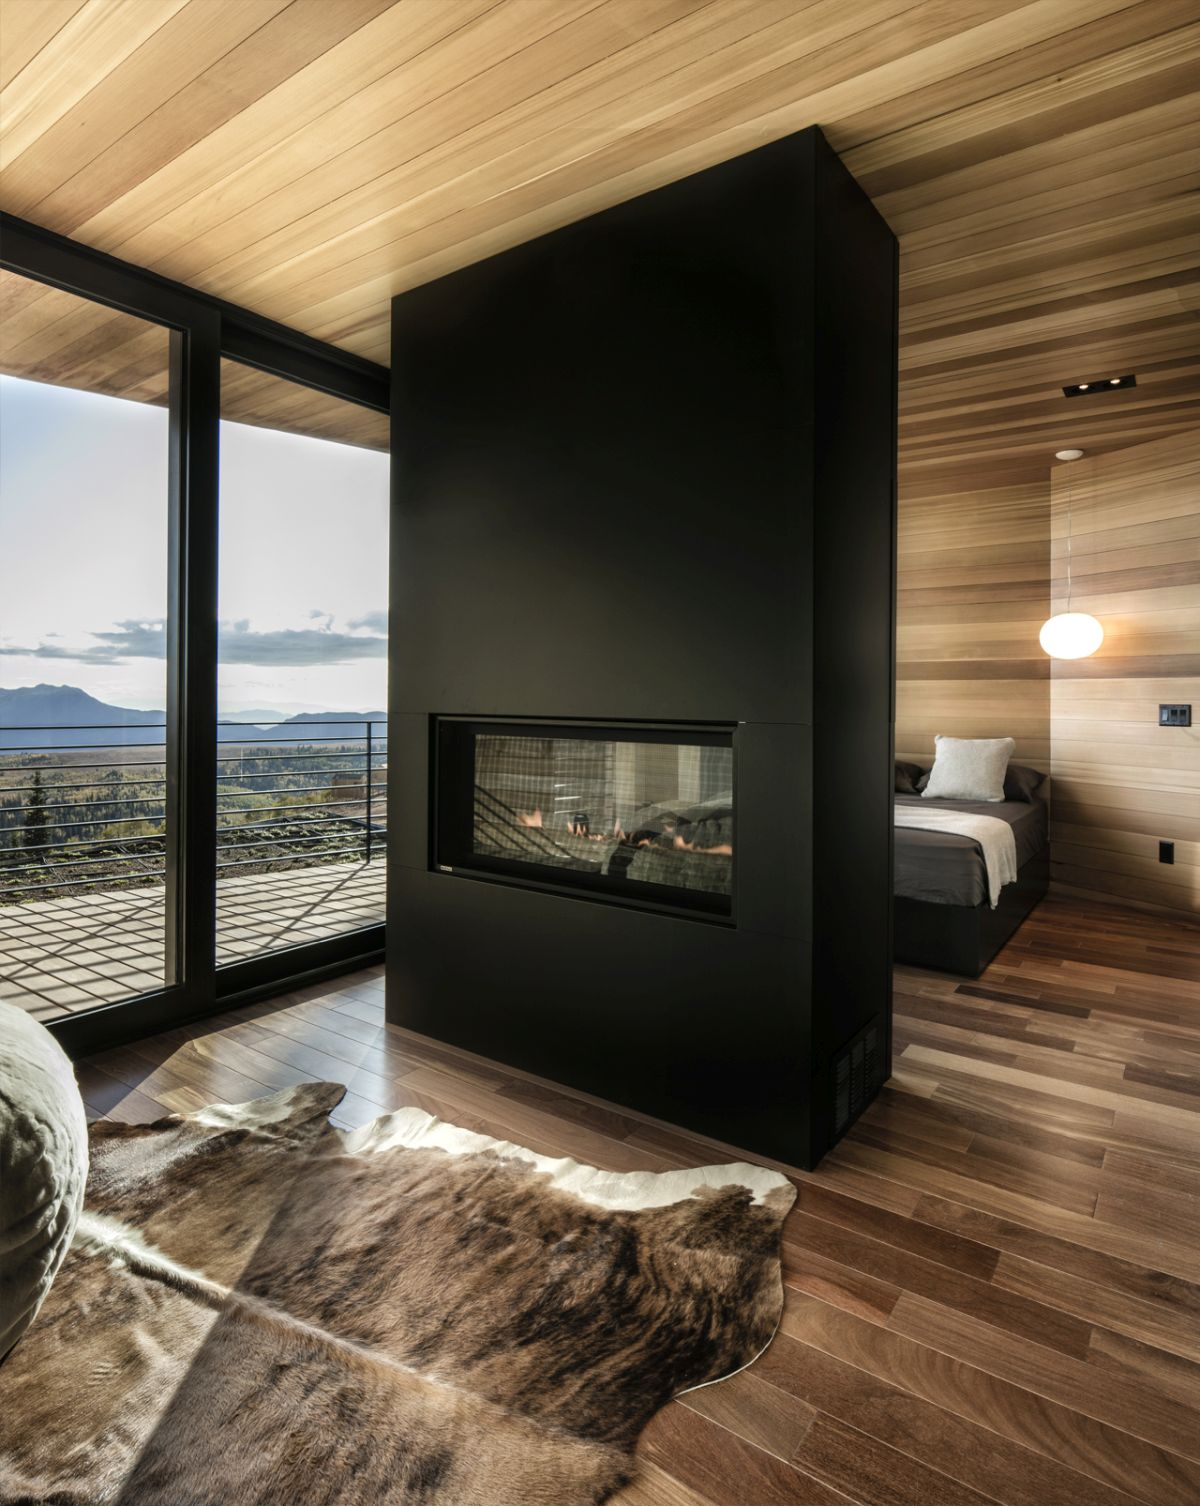 A fireplace wall divider gives the bedroom a sophisticated vibe